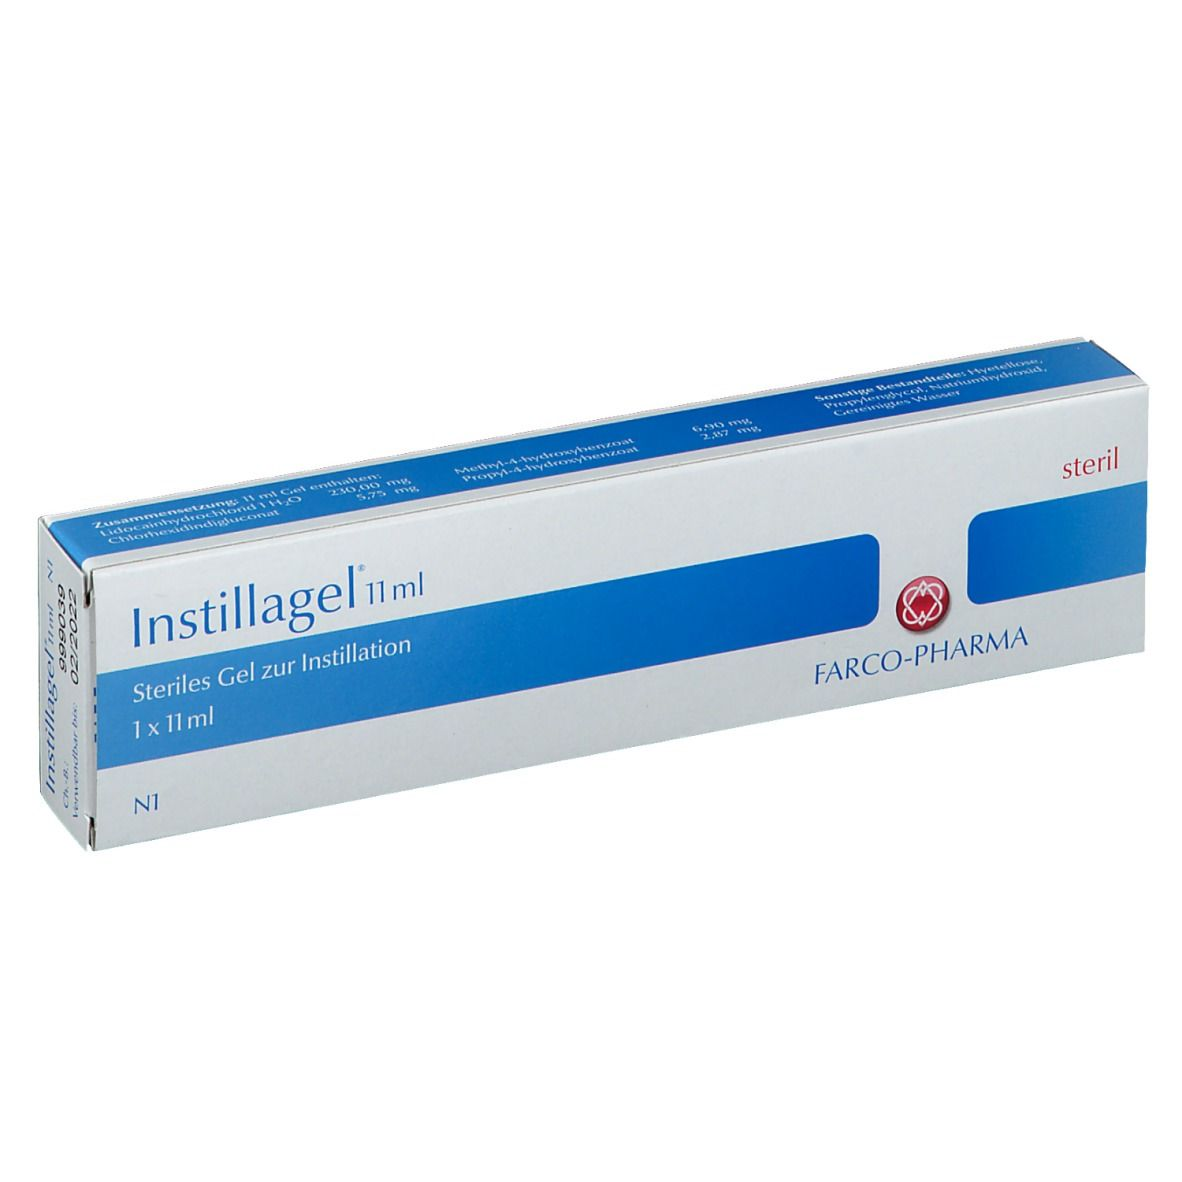 Instillagel® 11 ml